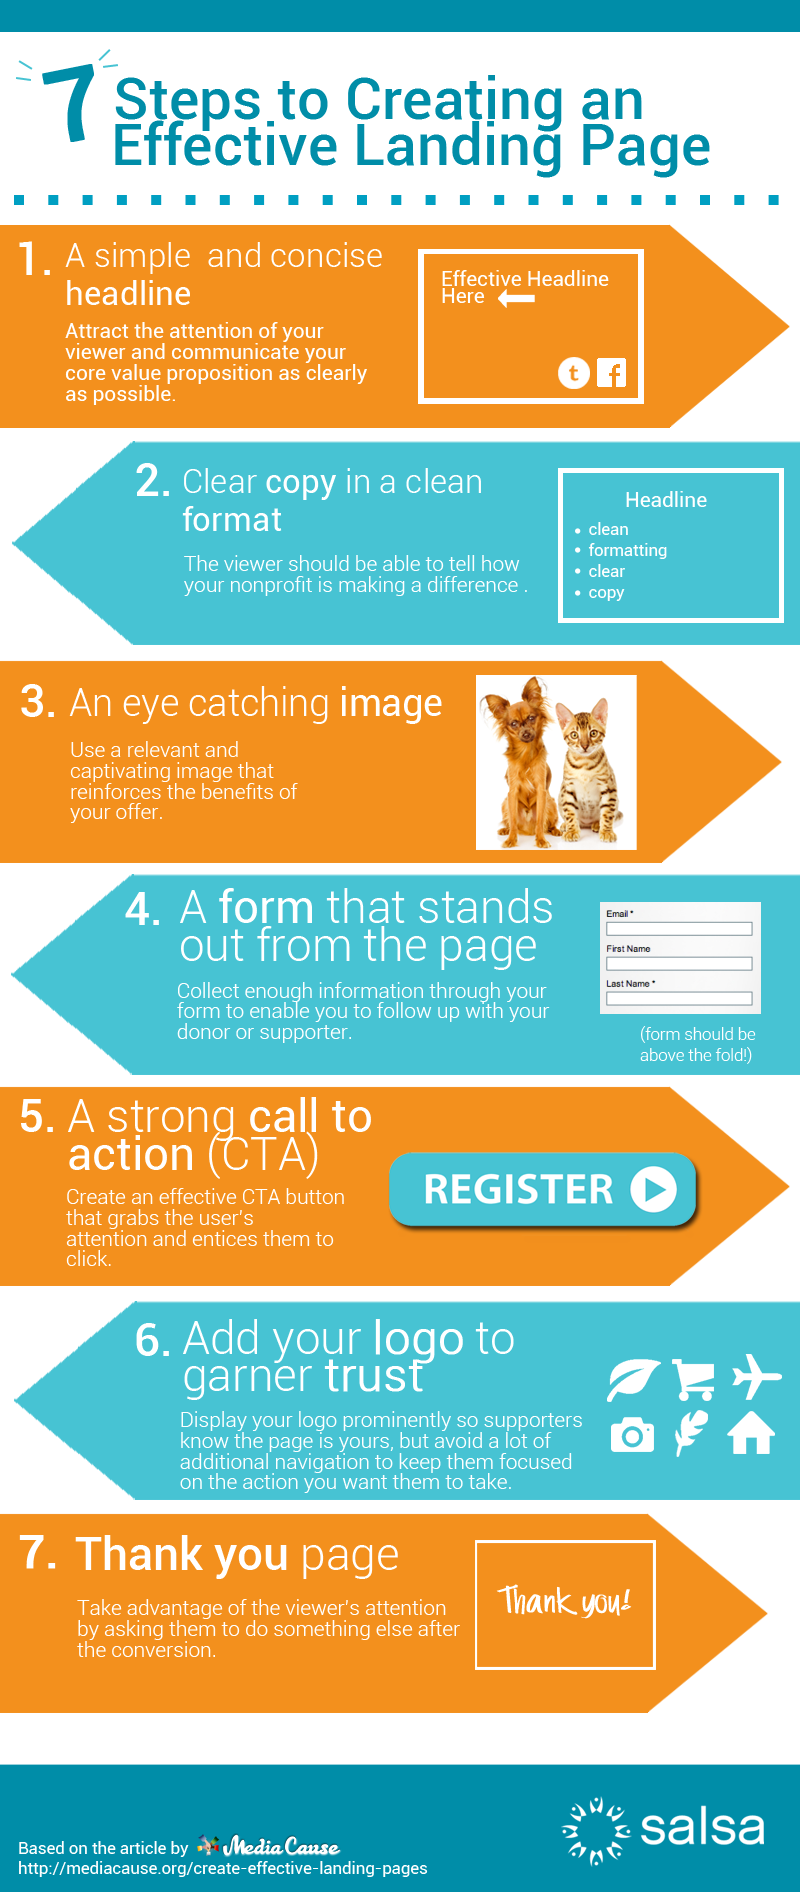 7 Steps To Creating An Effective Landing Page Infographic